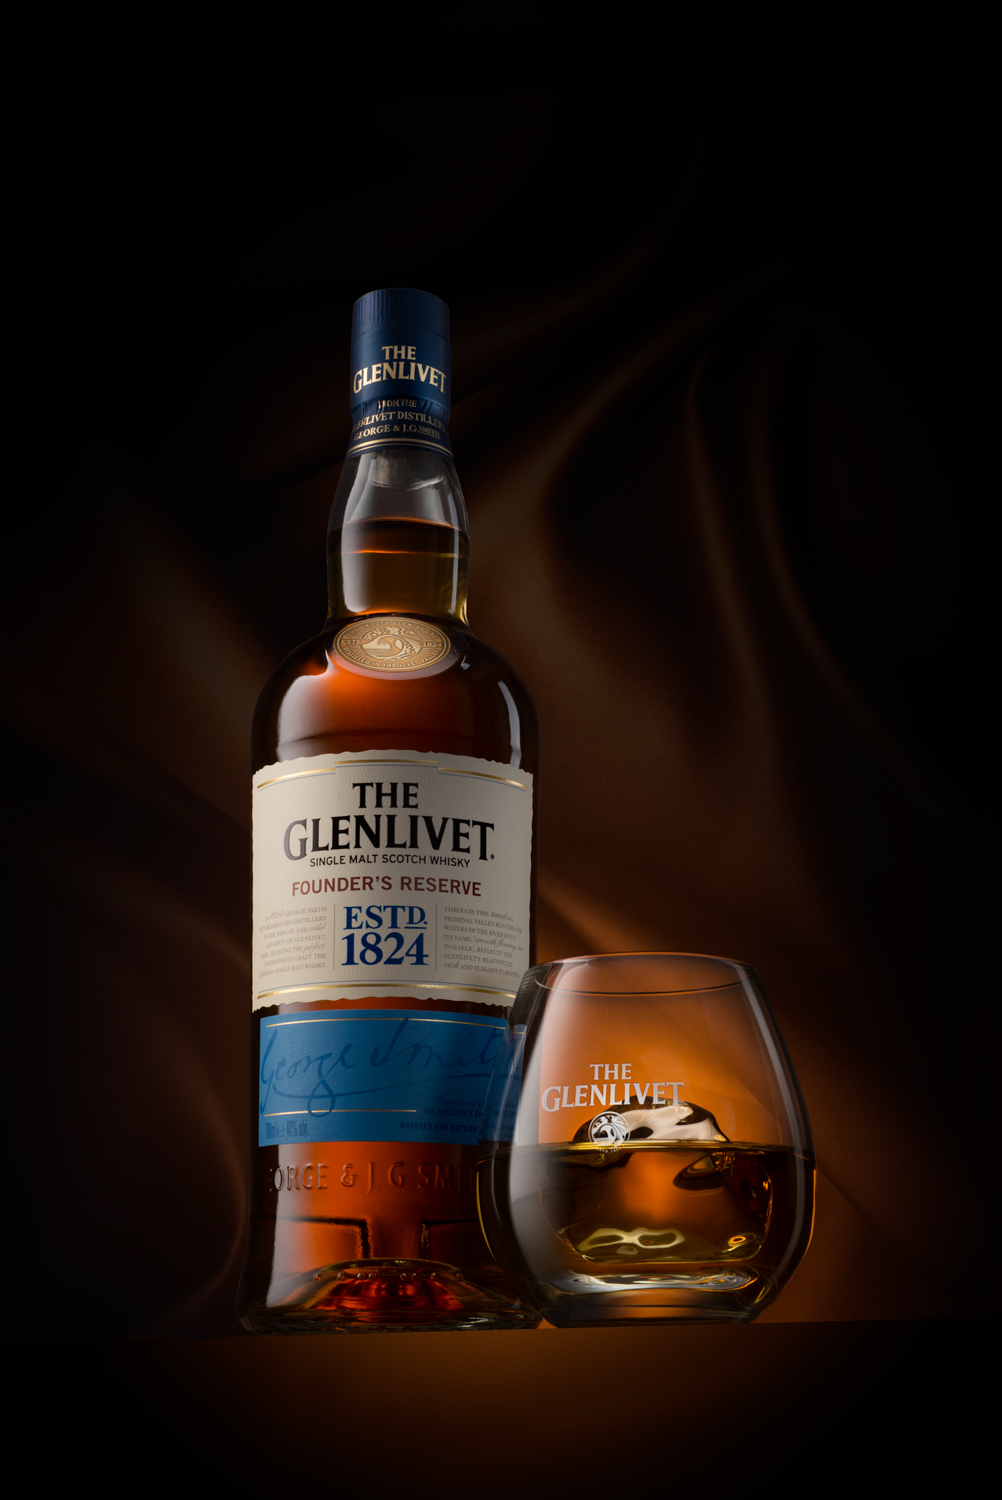 lettstudio_beverage_photography_glenlivet_hero.jpg